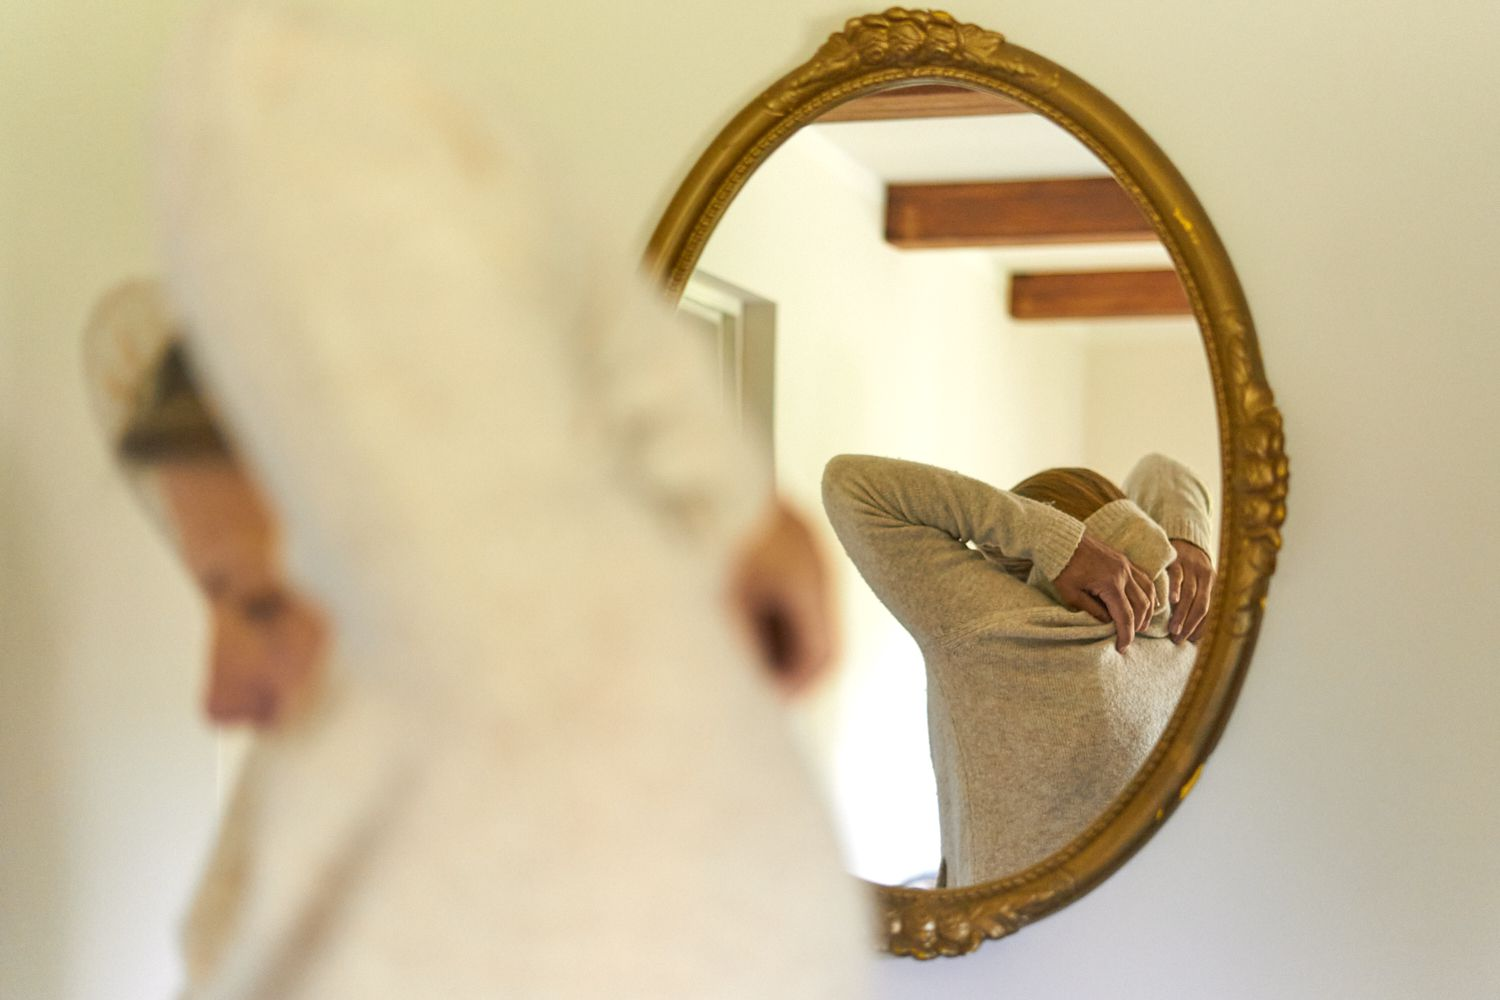 reflection of person in gold oval mirror removing cream-colored sweater